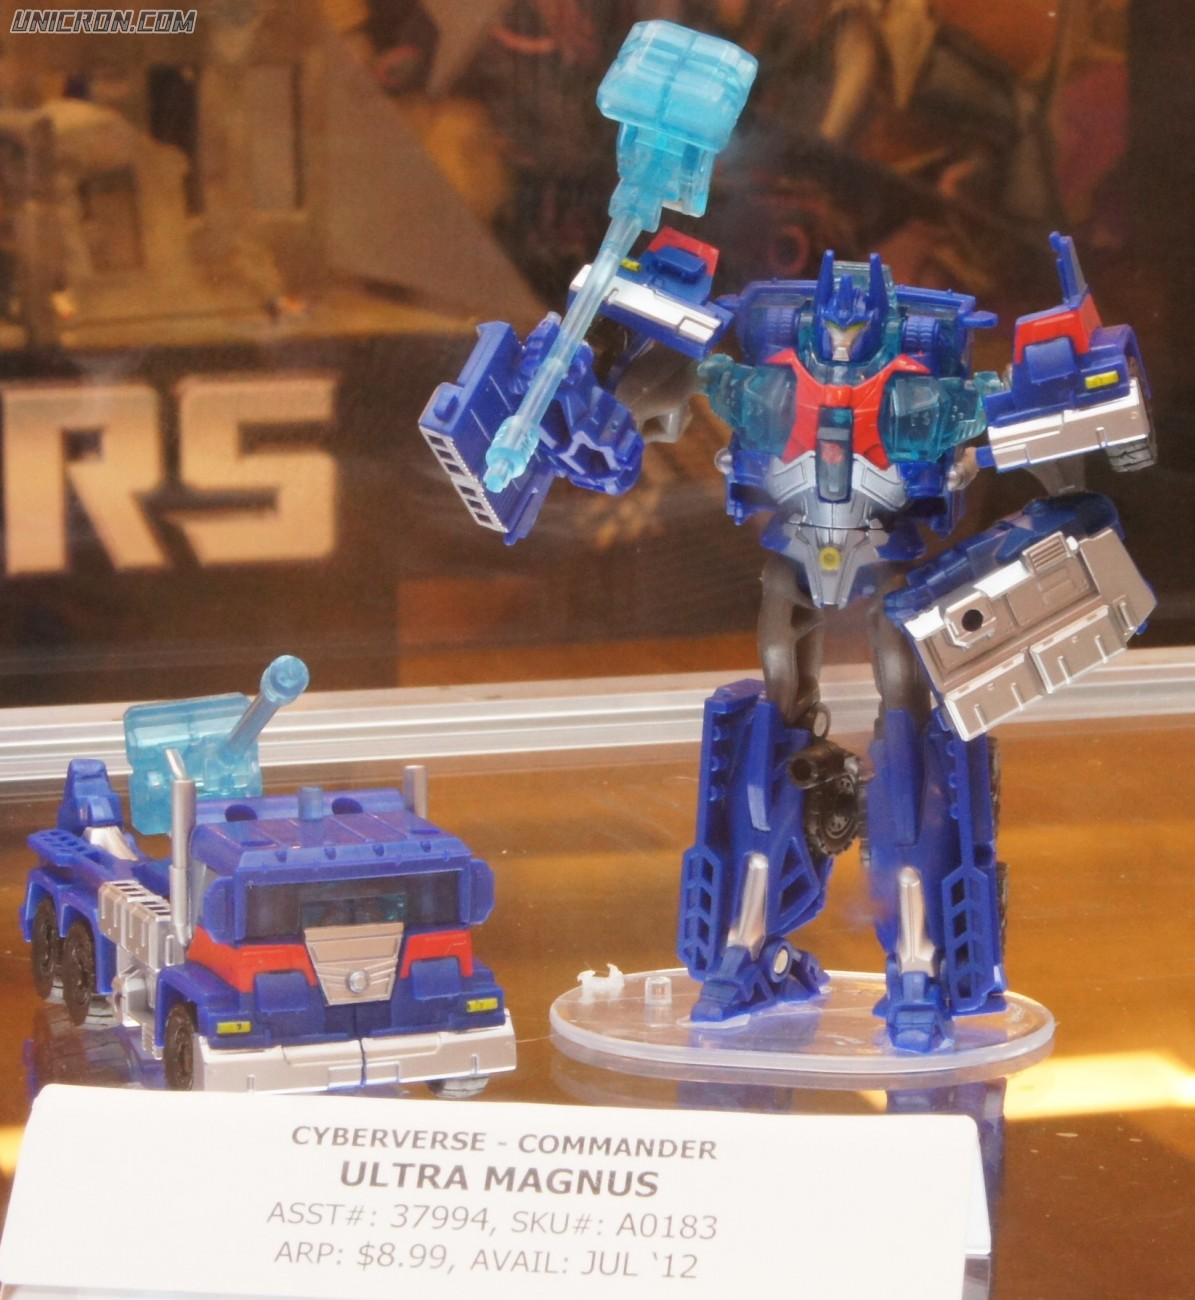 Transformers Cyberverse Ultra Magnus (Cyberverse Commander) toy